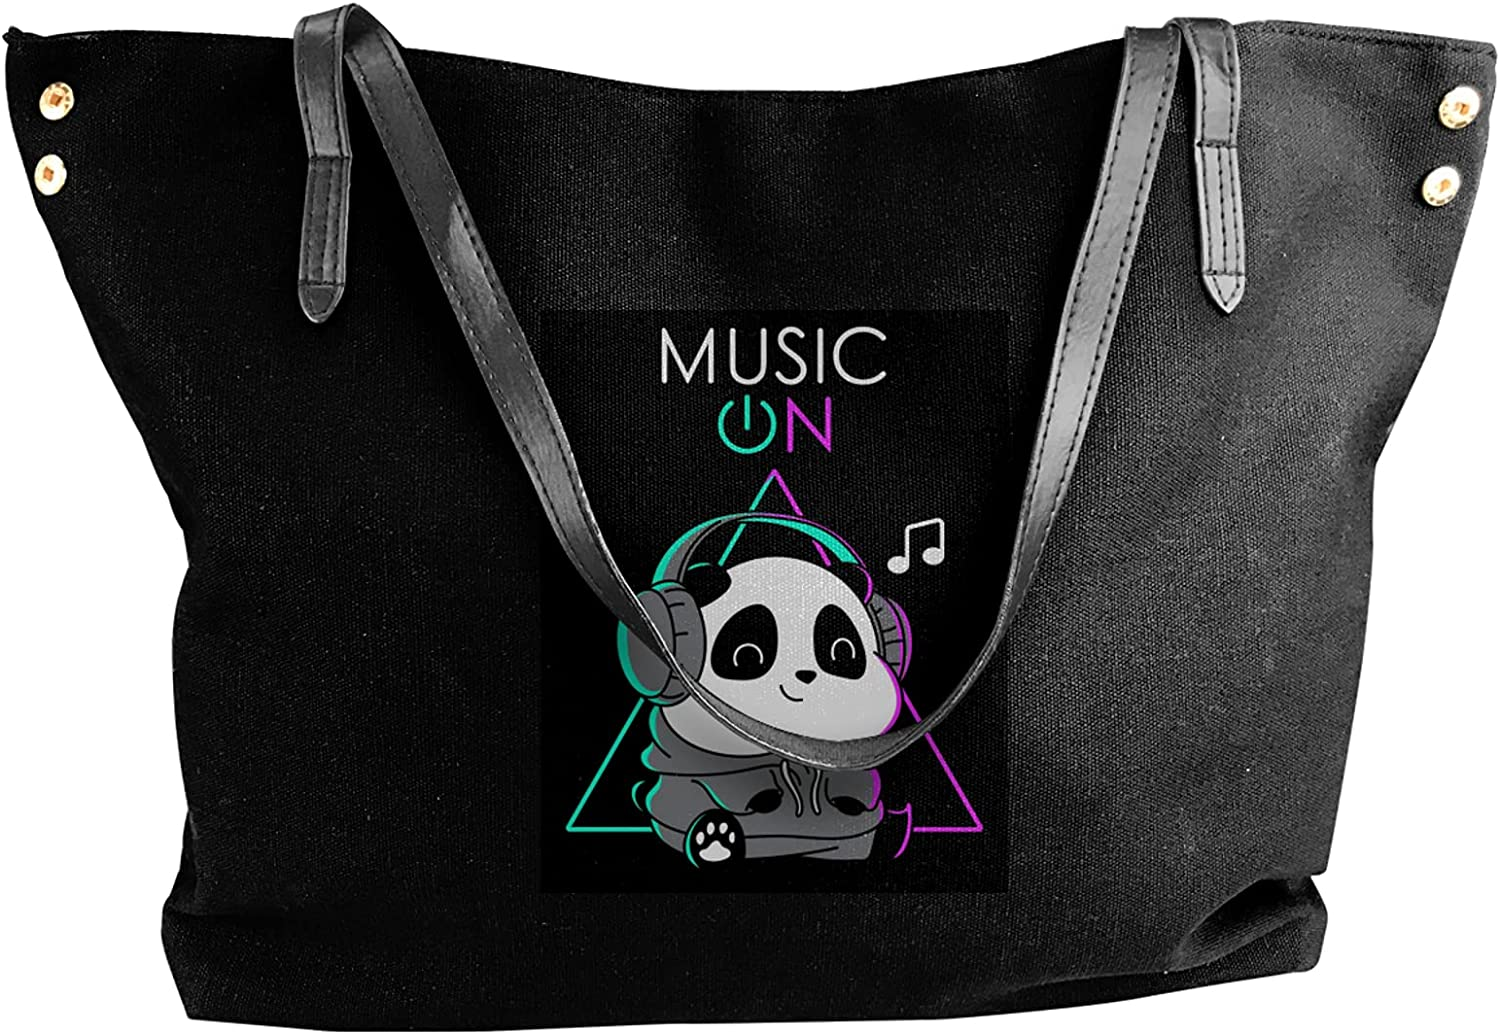 Canvas Opening large release sale Shoulder Bags Funny San Francisco Mall Panda Purse Casual Tote Bag